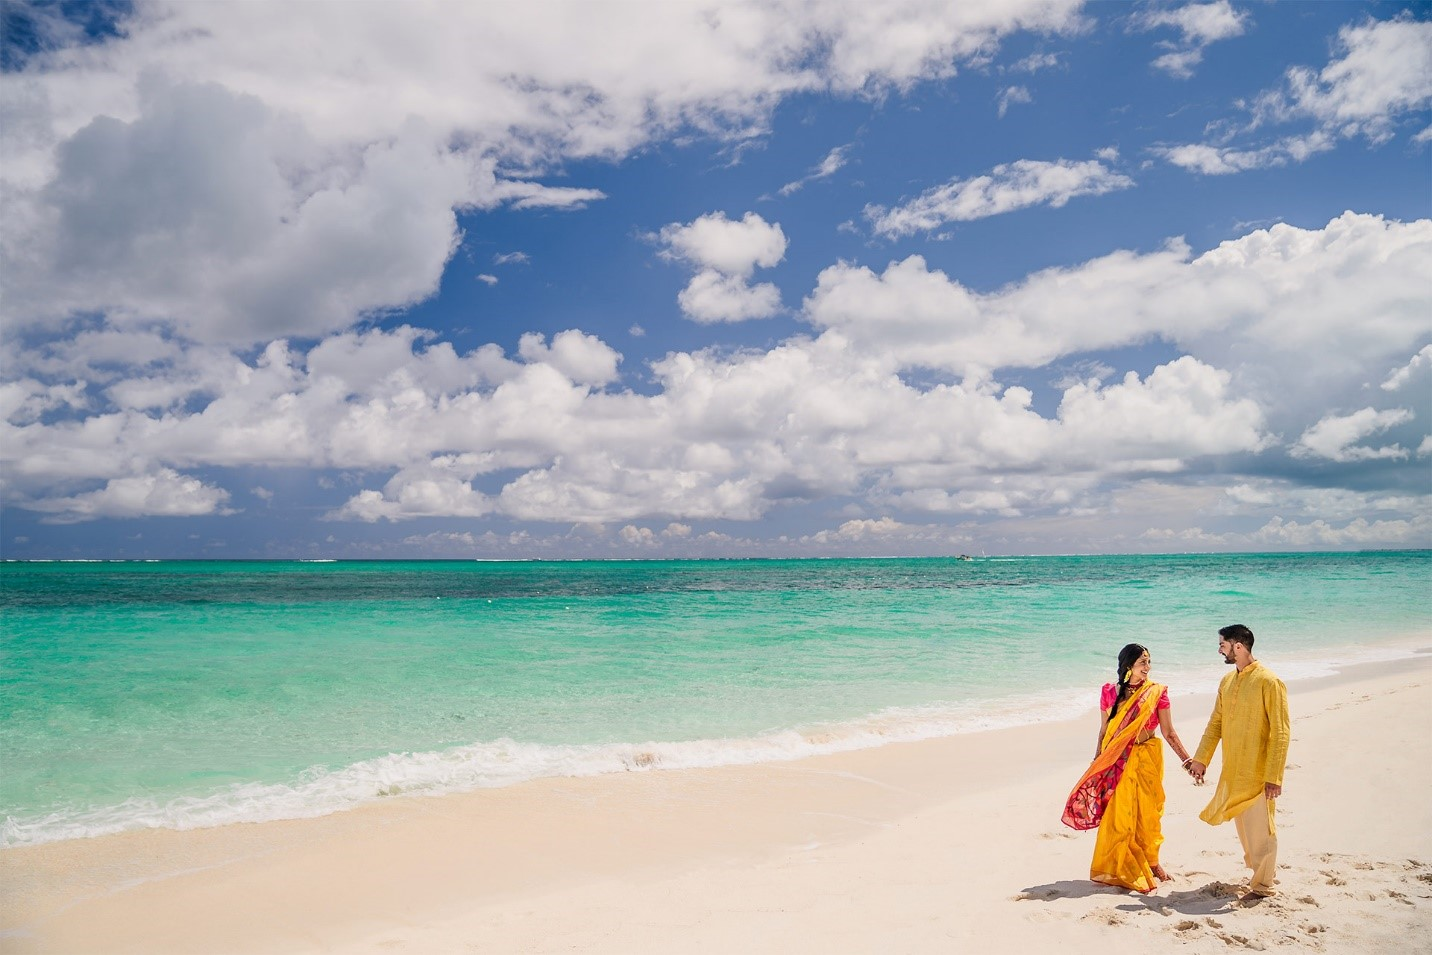 Day of Haldi Ceremony- Bride and Groom take a stroll along the beach